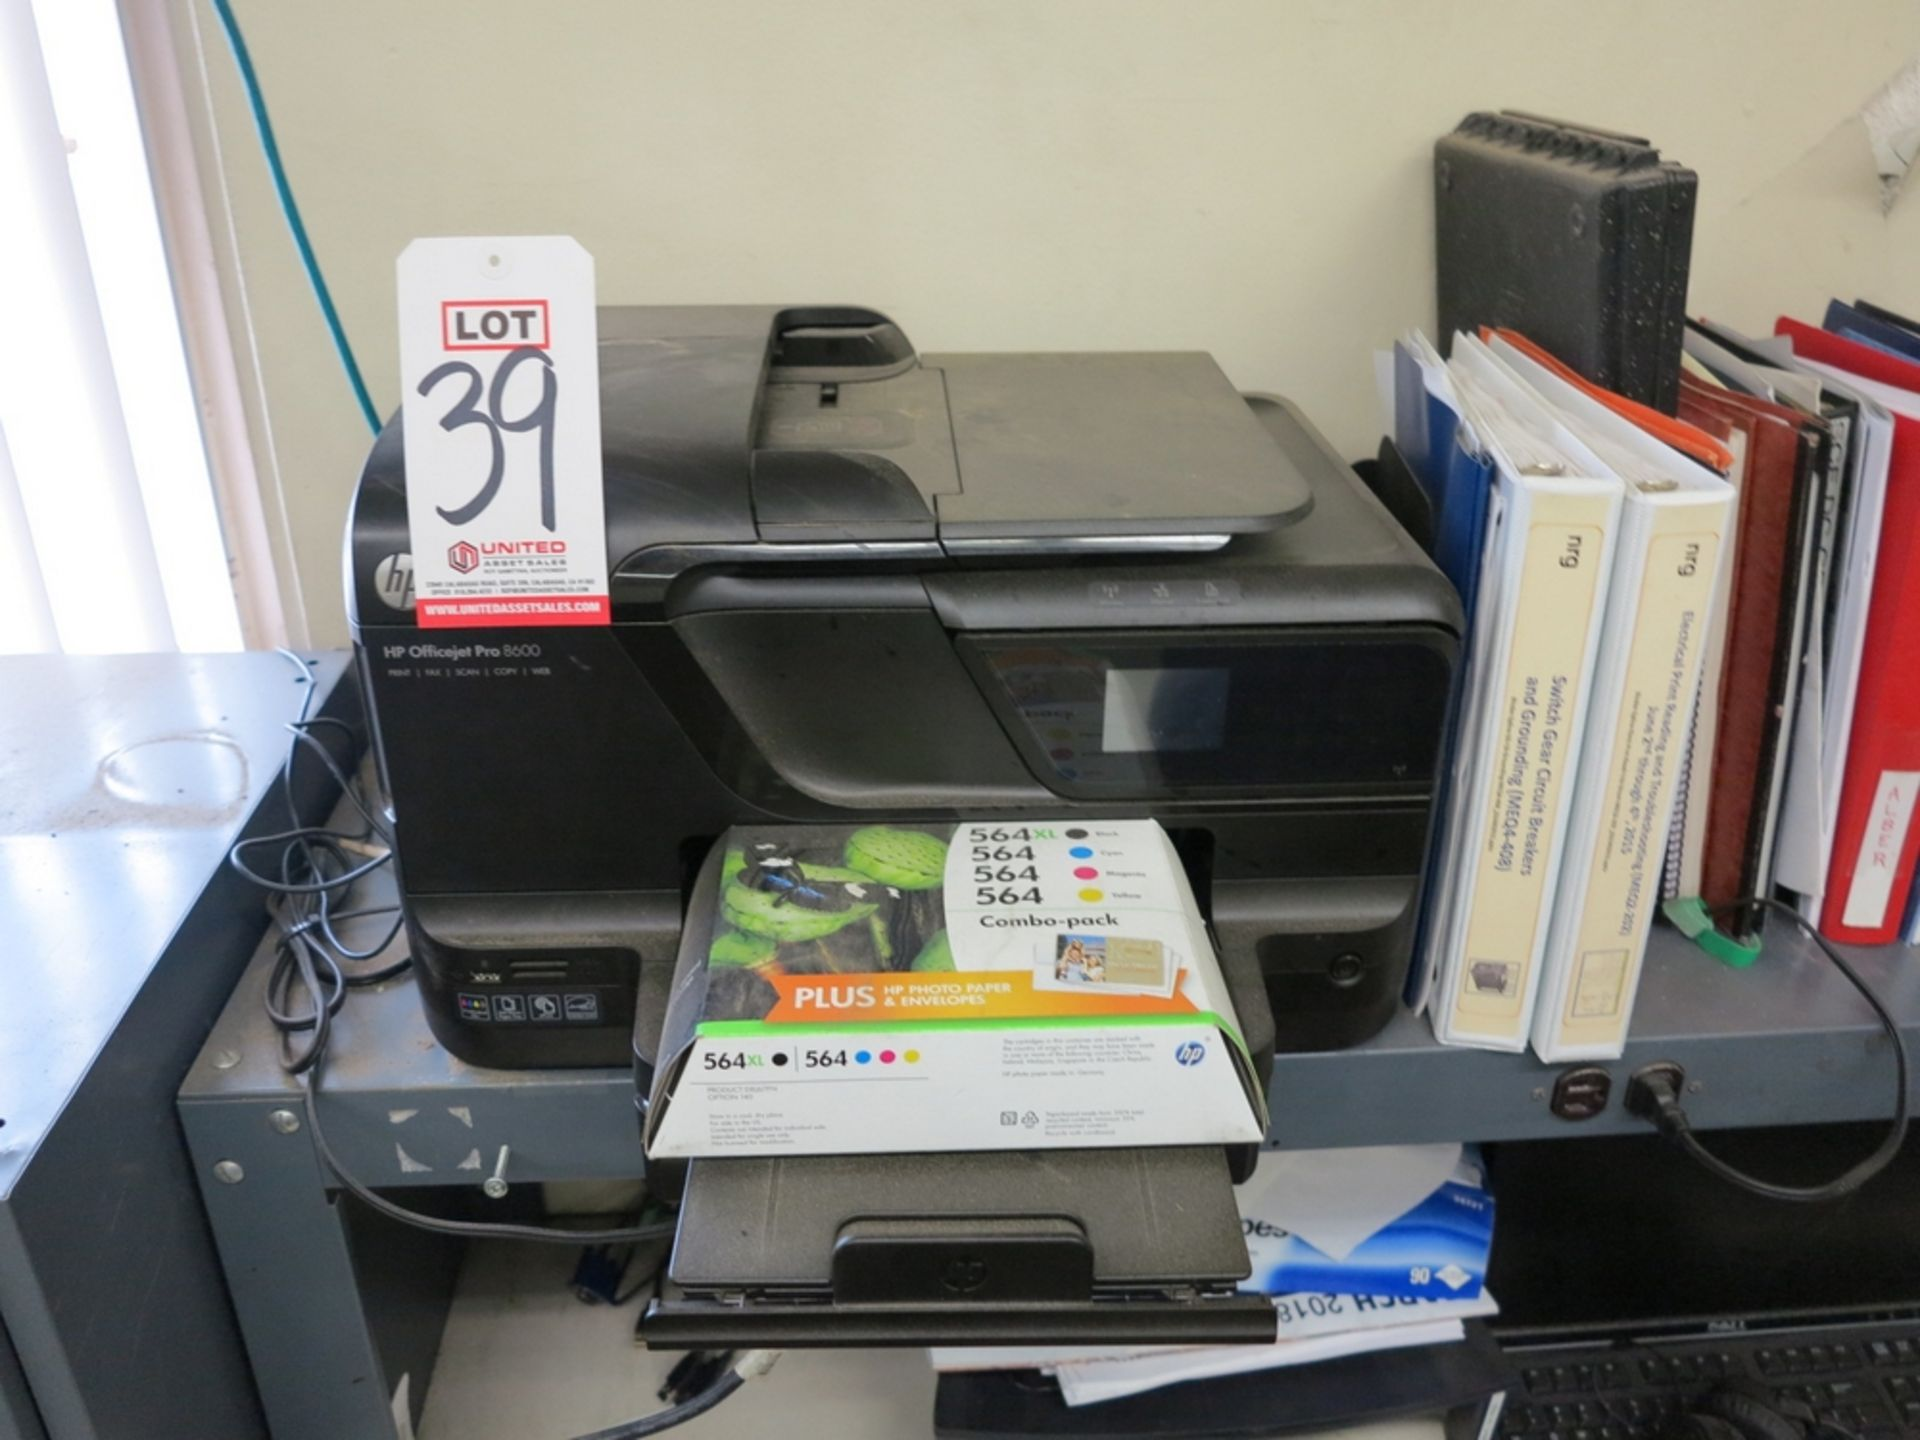 Lot 39 - HP OFFICEJET PRO 8600 PRINTER